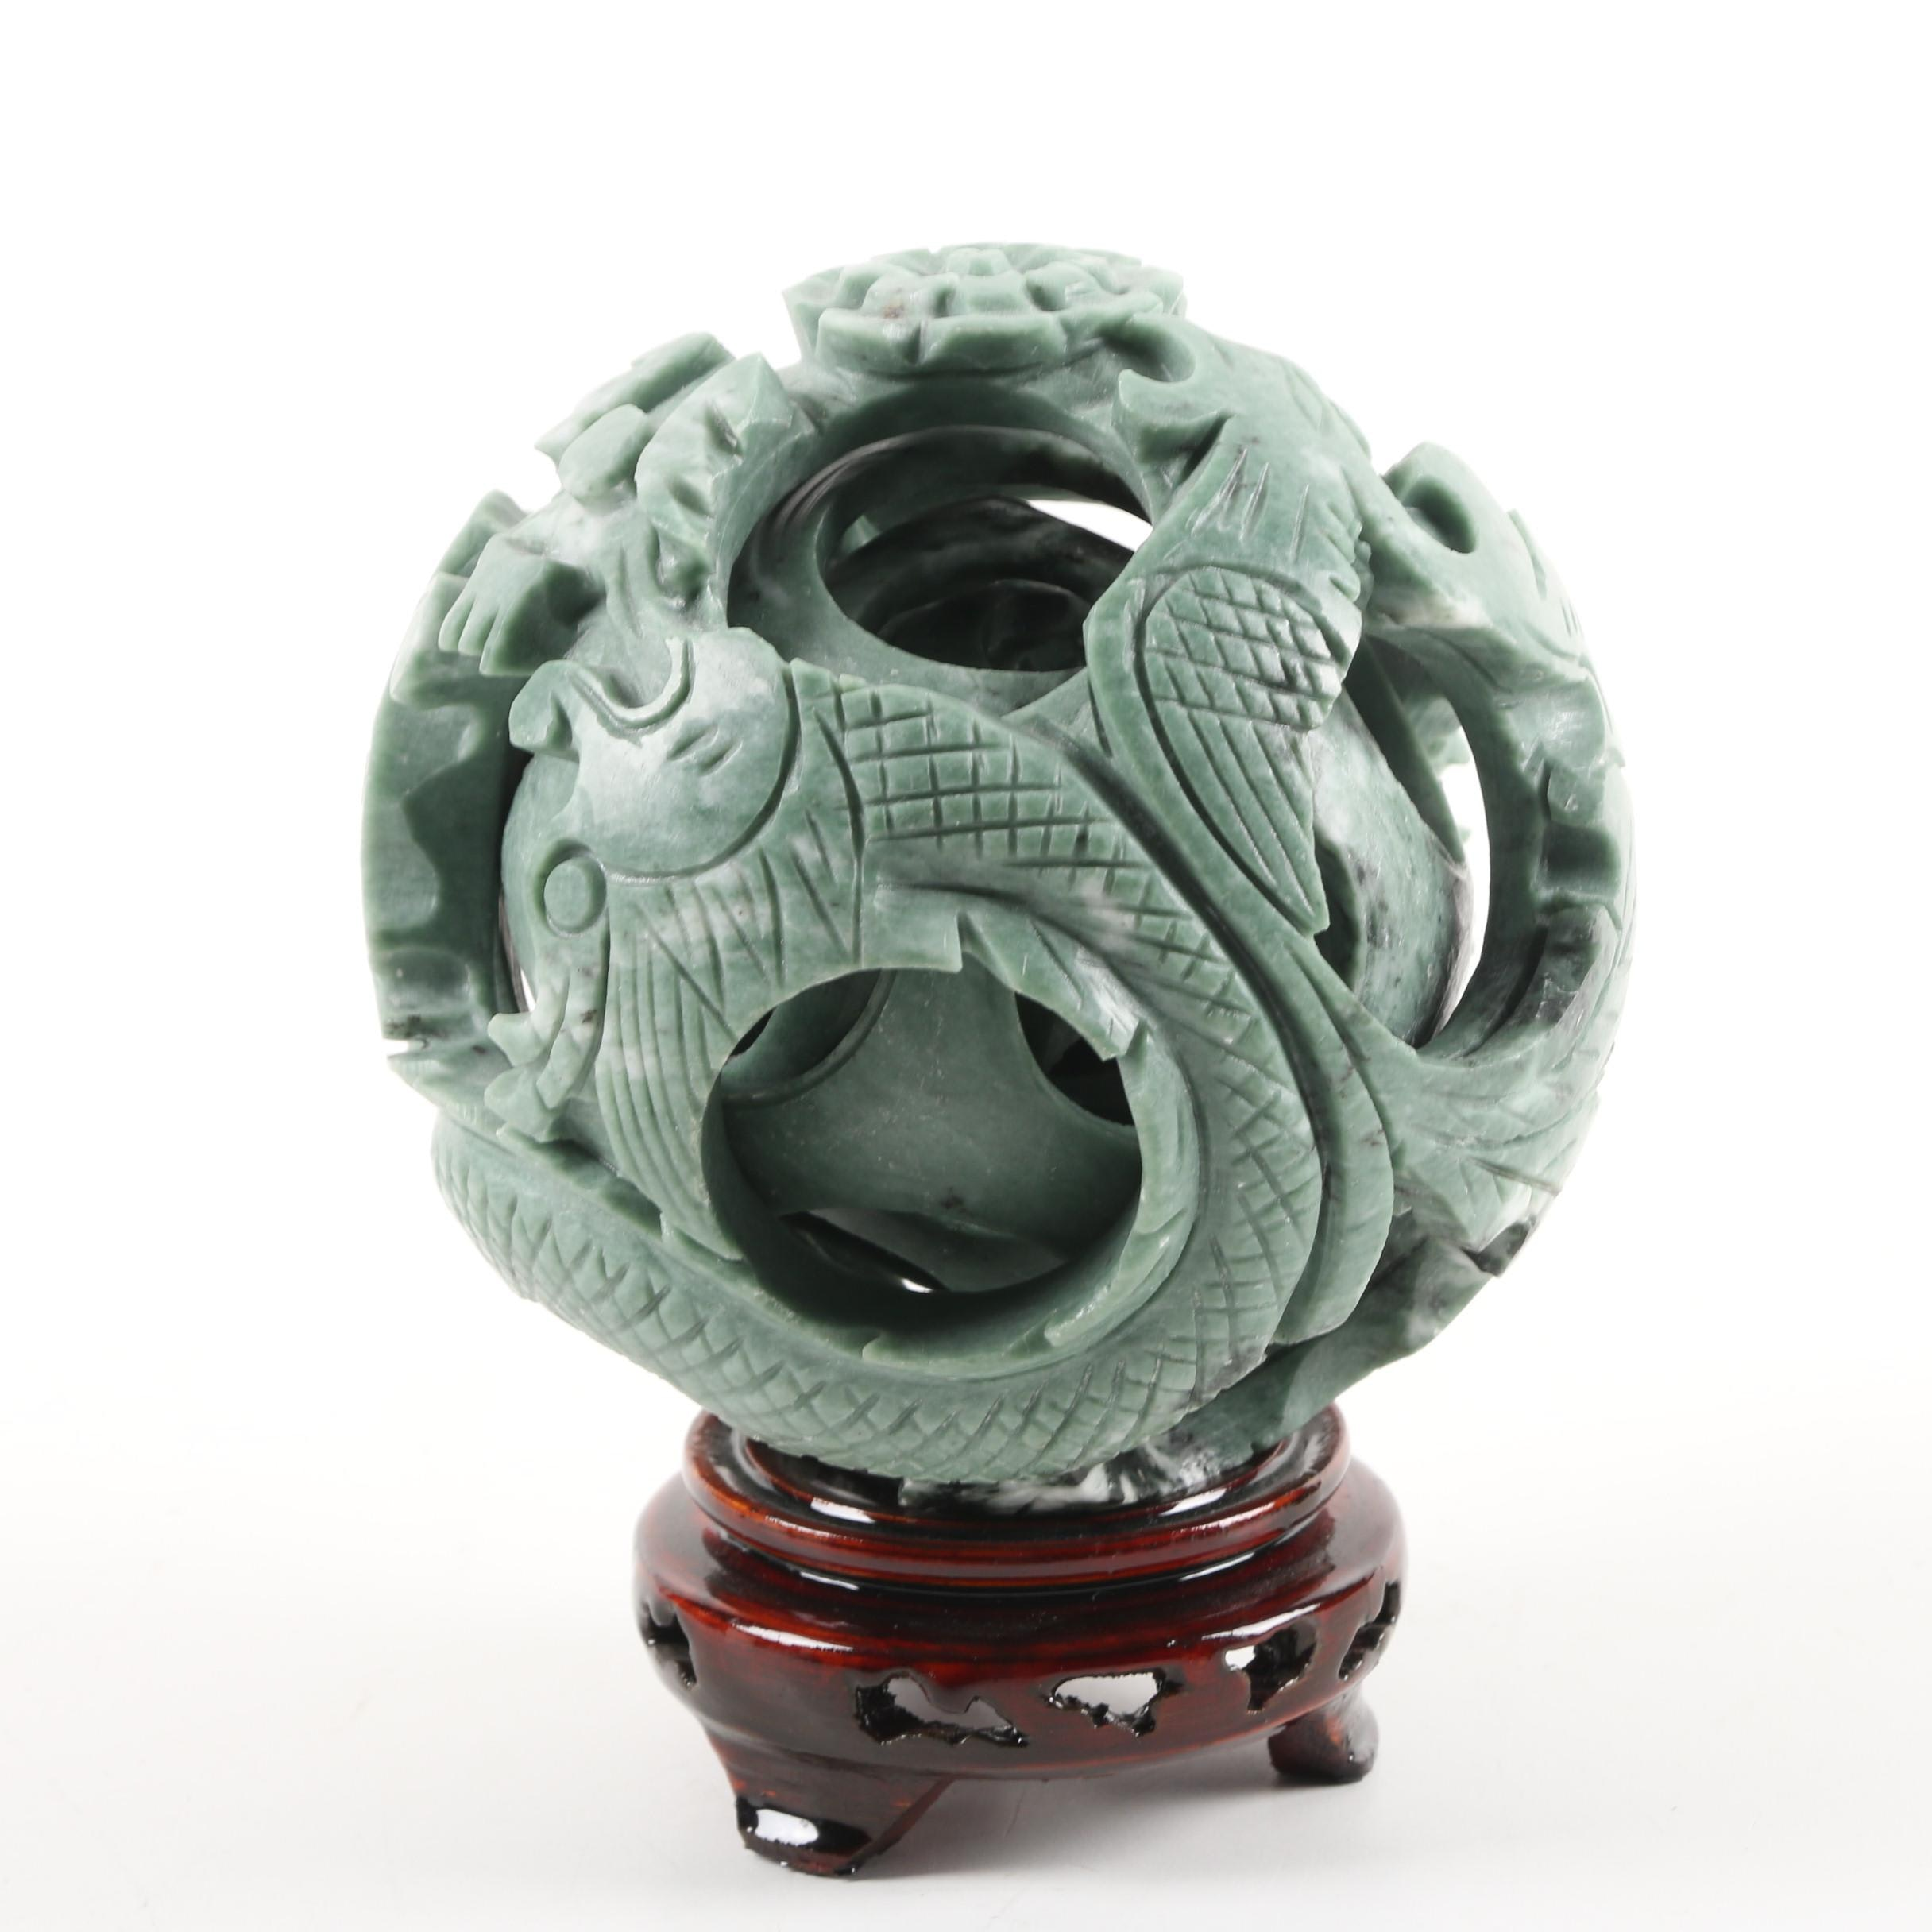 Carved Green Marble Chinese Puzzle Ball with Lacquered Wood Base